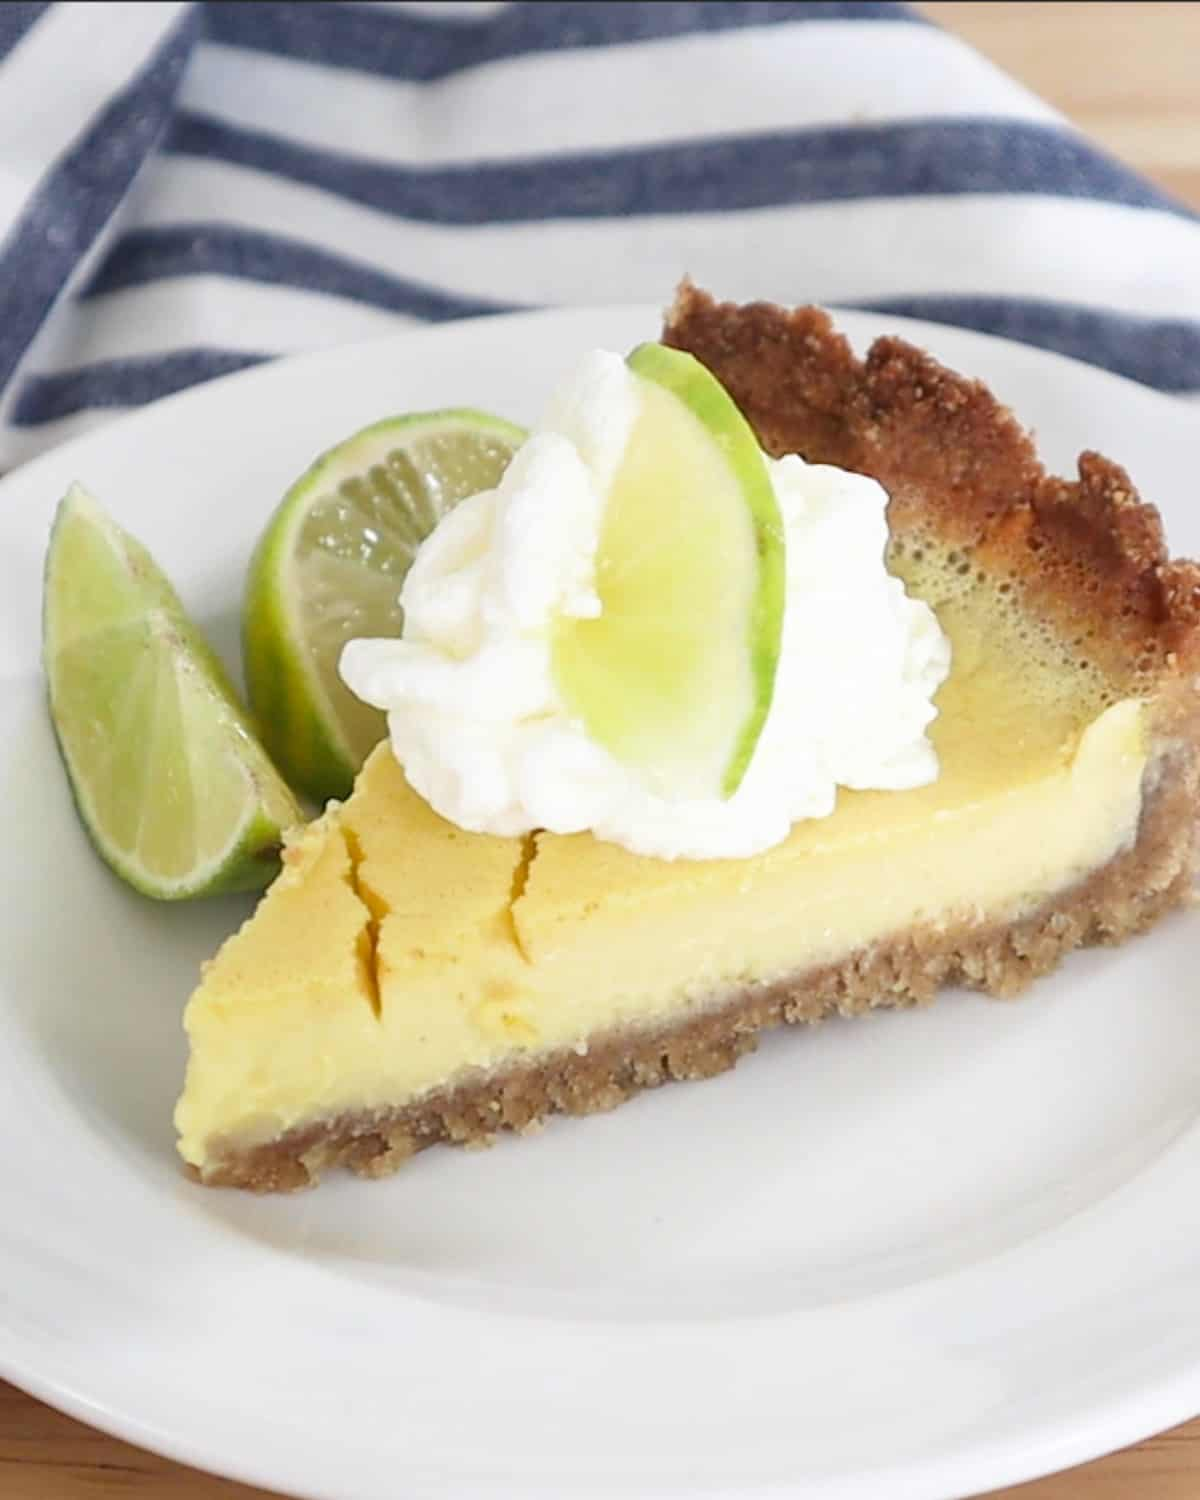 slice of pie with whipped cream and pie